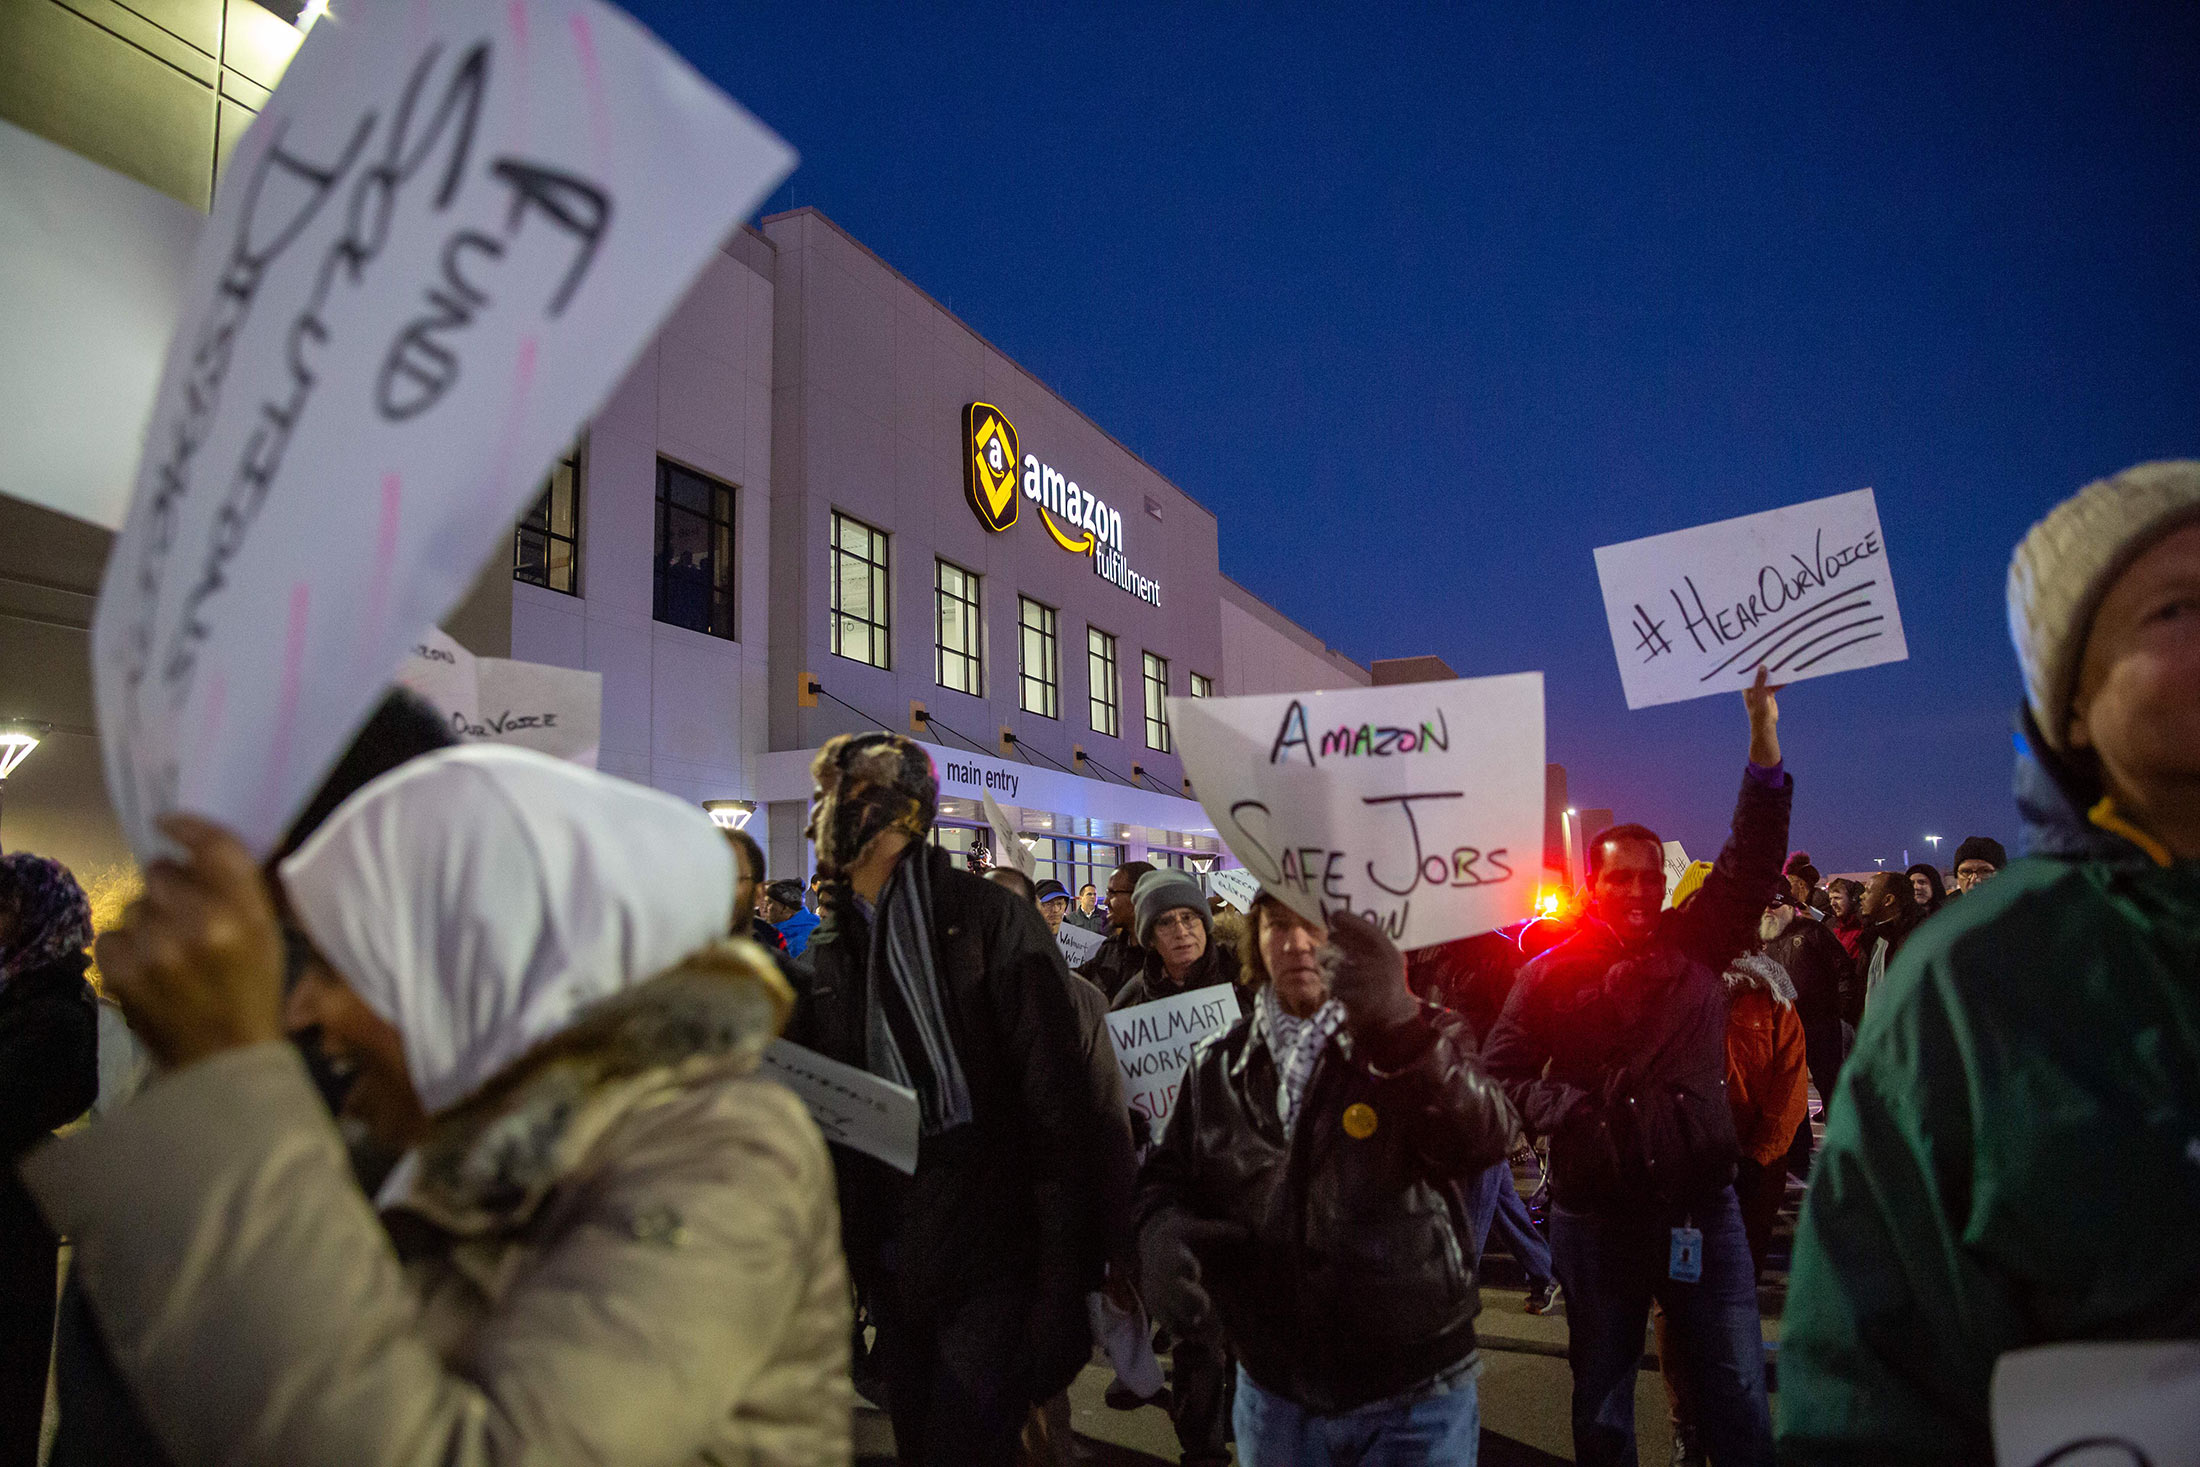 Demonstrators protest at the Amazon fulfillment center in Shakopee, Minnesota, on Dec. 14, 2018.